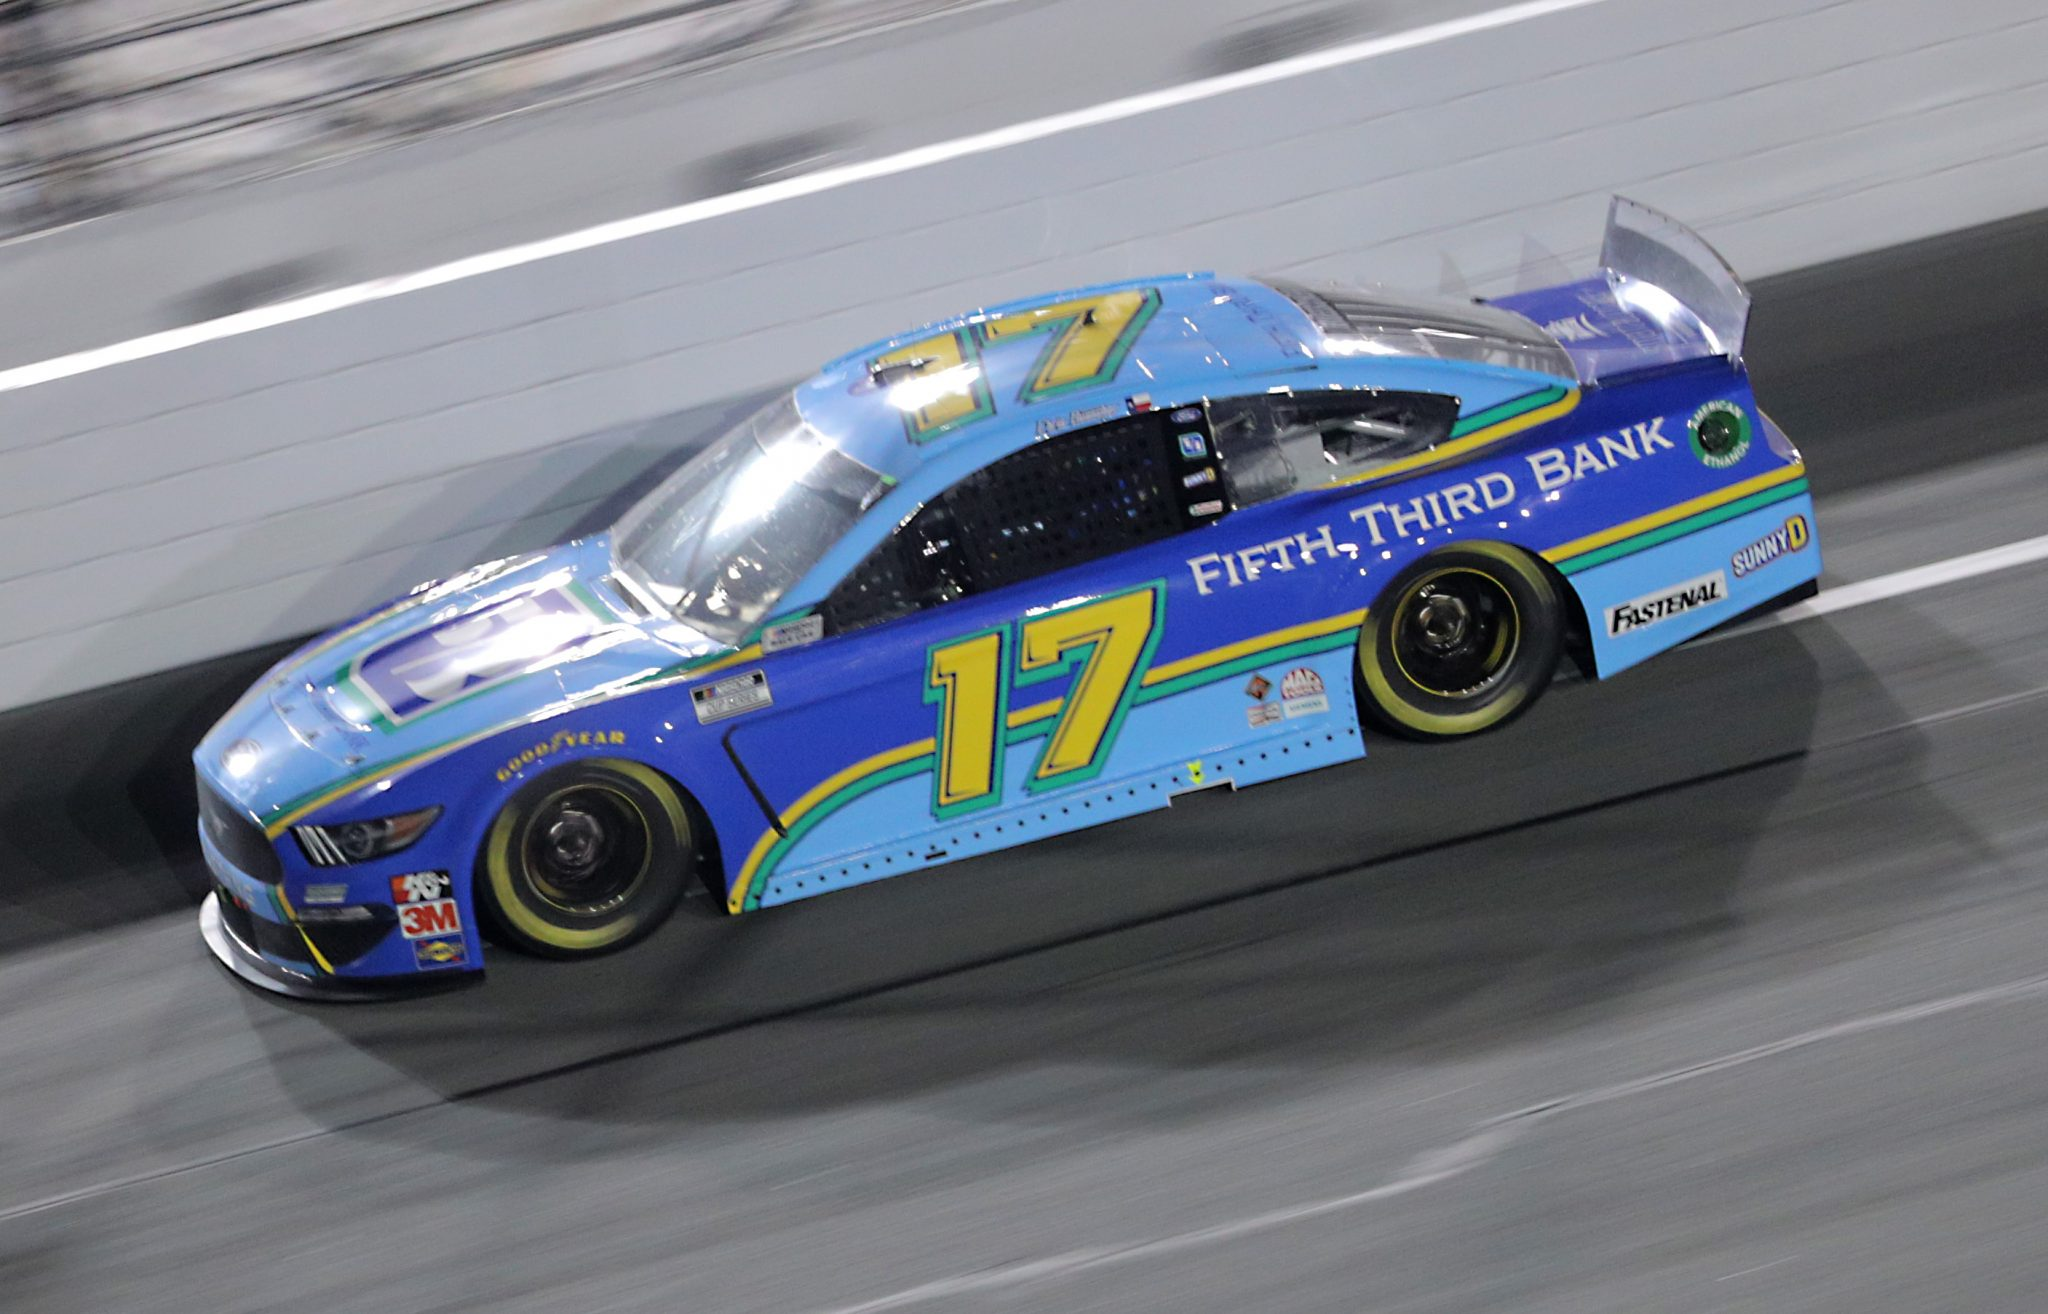 DAYTONA BEACH, FLORIDA - AUGUST 29: Chris Buescher, driver of the #17 Fifth Third Bank Ford, races during the NASCAR Cup Series Coke Zero Sugar 400 at Daytona International Speedway on August 29, 2020 in Daytona Beach, Florida. (Photo by Chris Graythen/Getty Images) | Getty Images